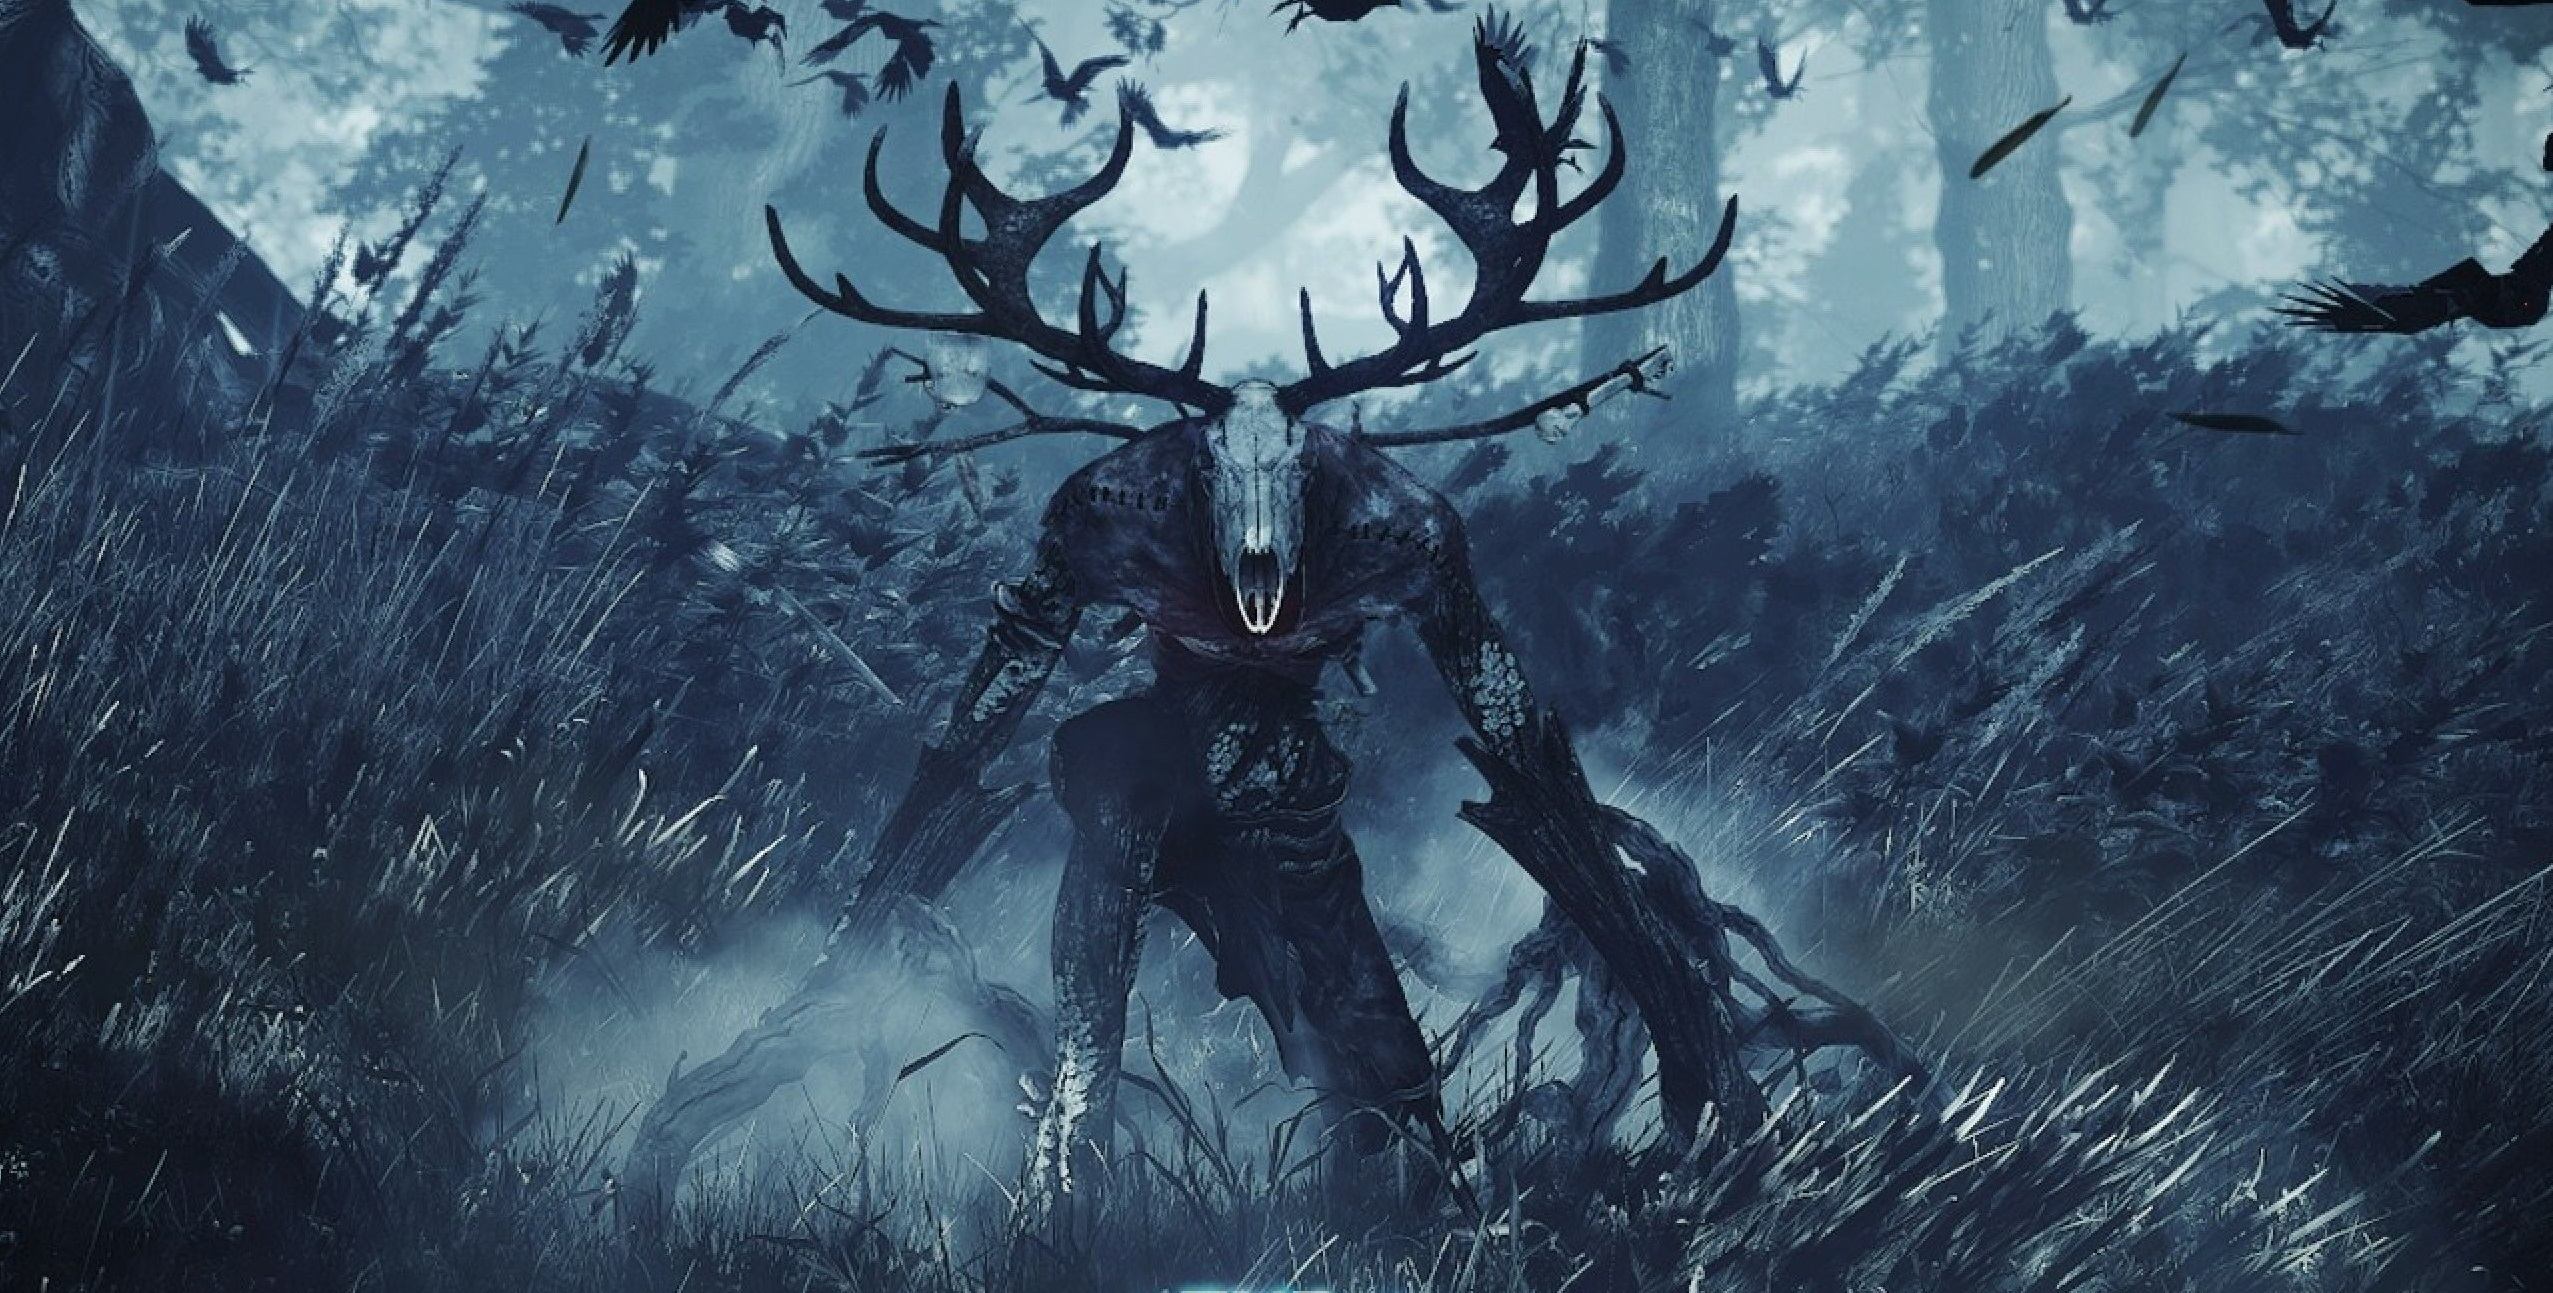 The Witcher Season 2 will feature a familiar monster from the game - Redanian Intelligence